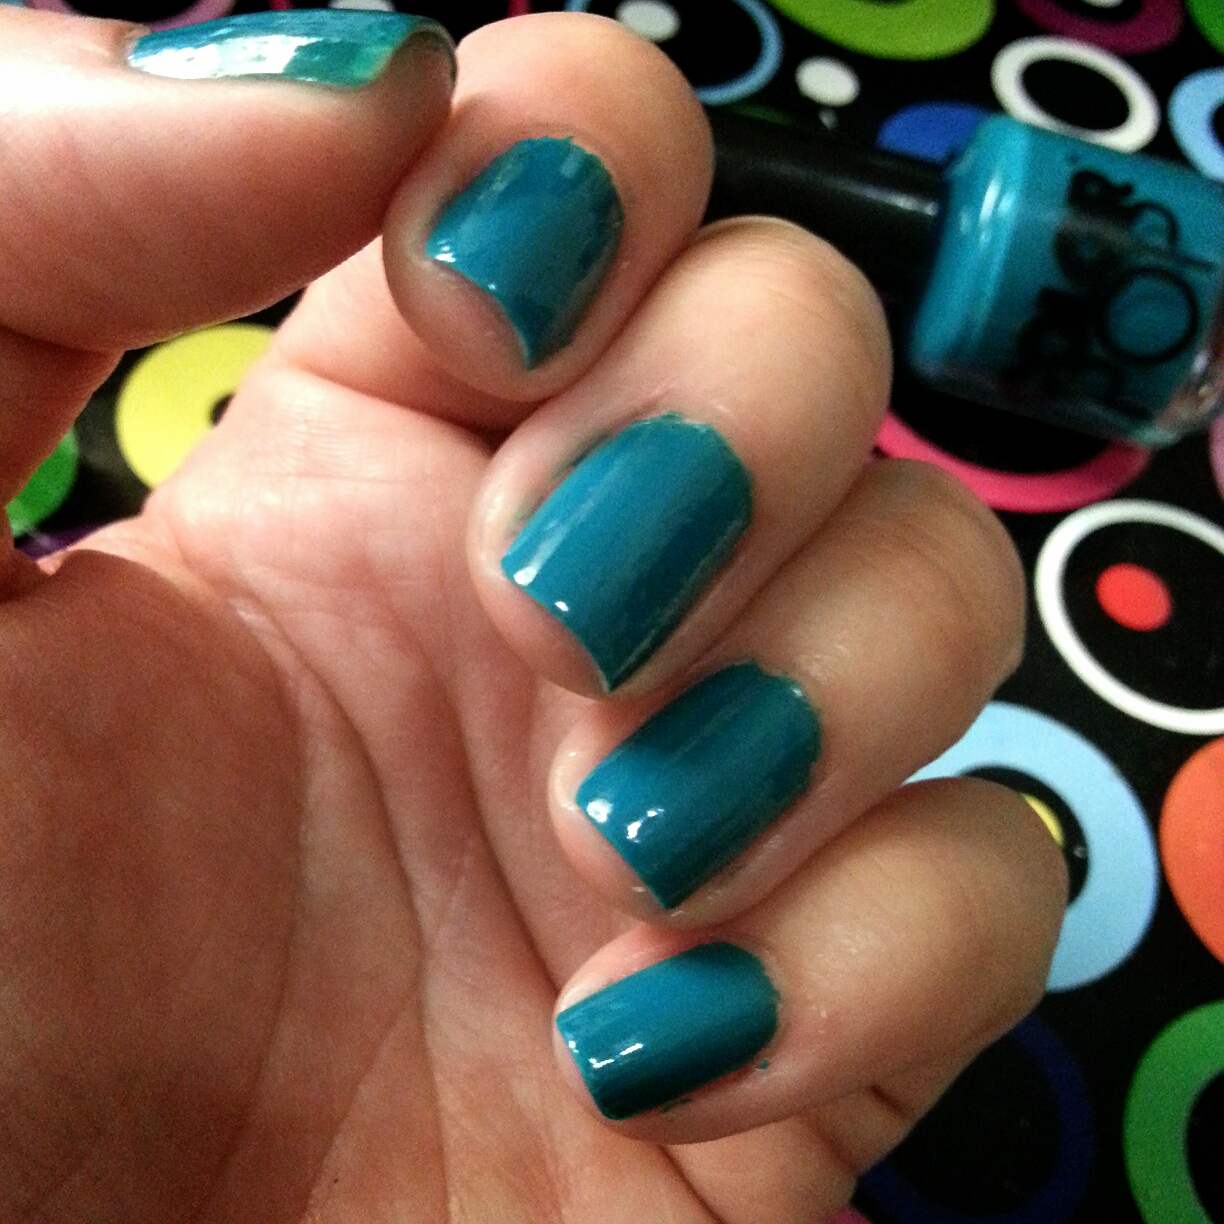 Colores: COLOR POP – Turquoise | Adrix Nails: Uñas, barnices, nail ...